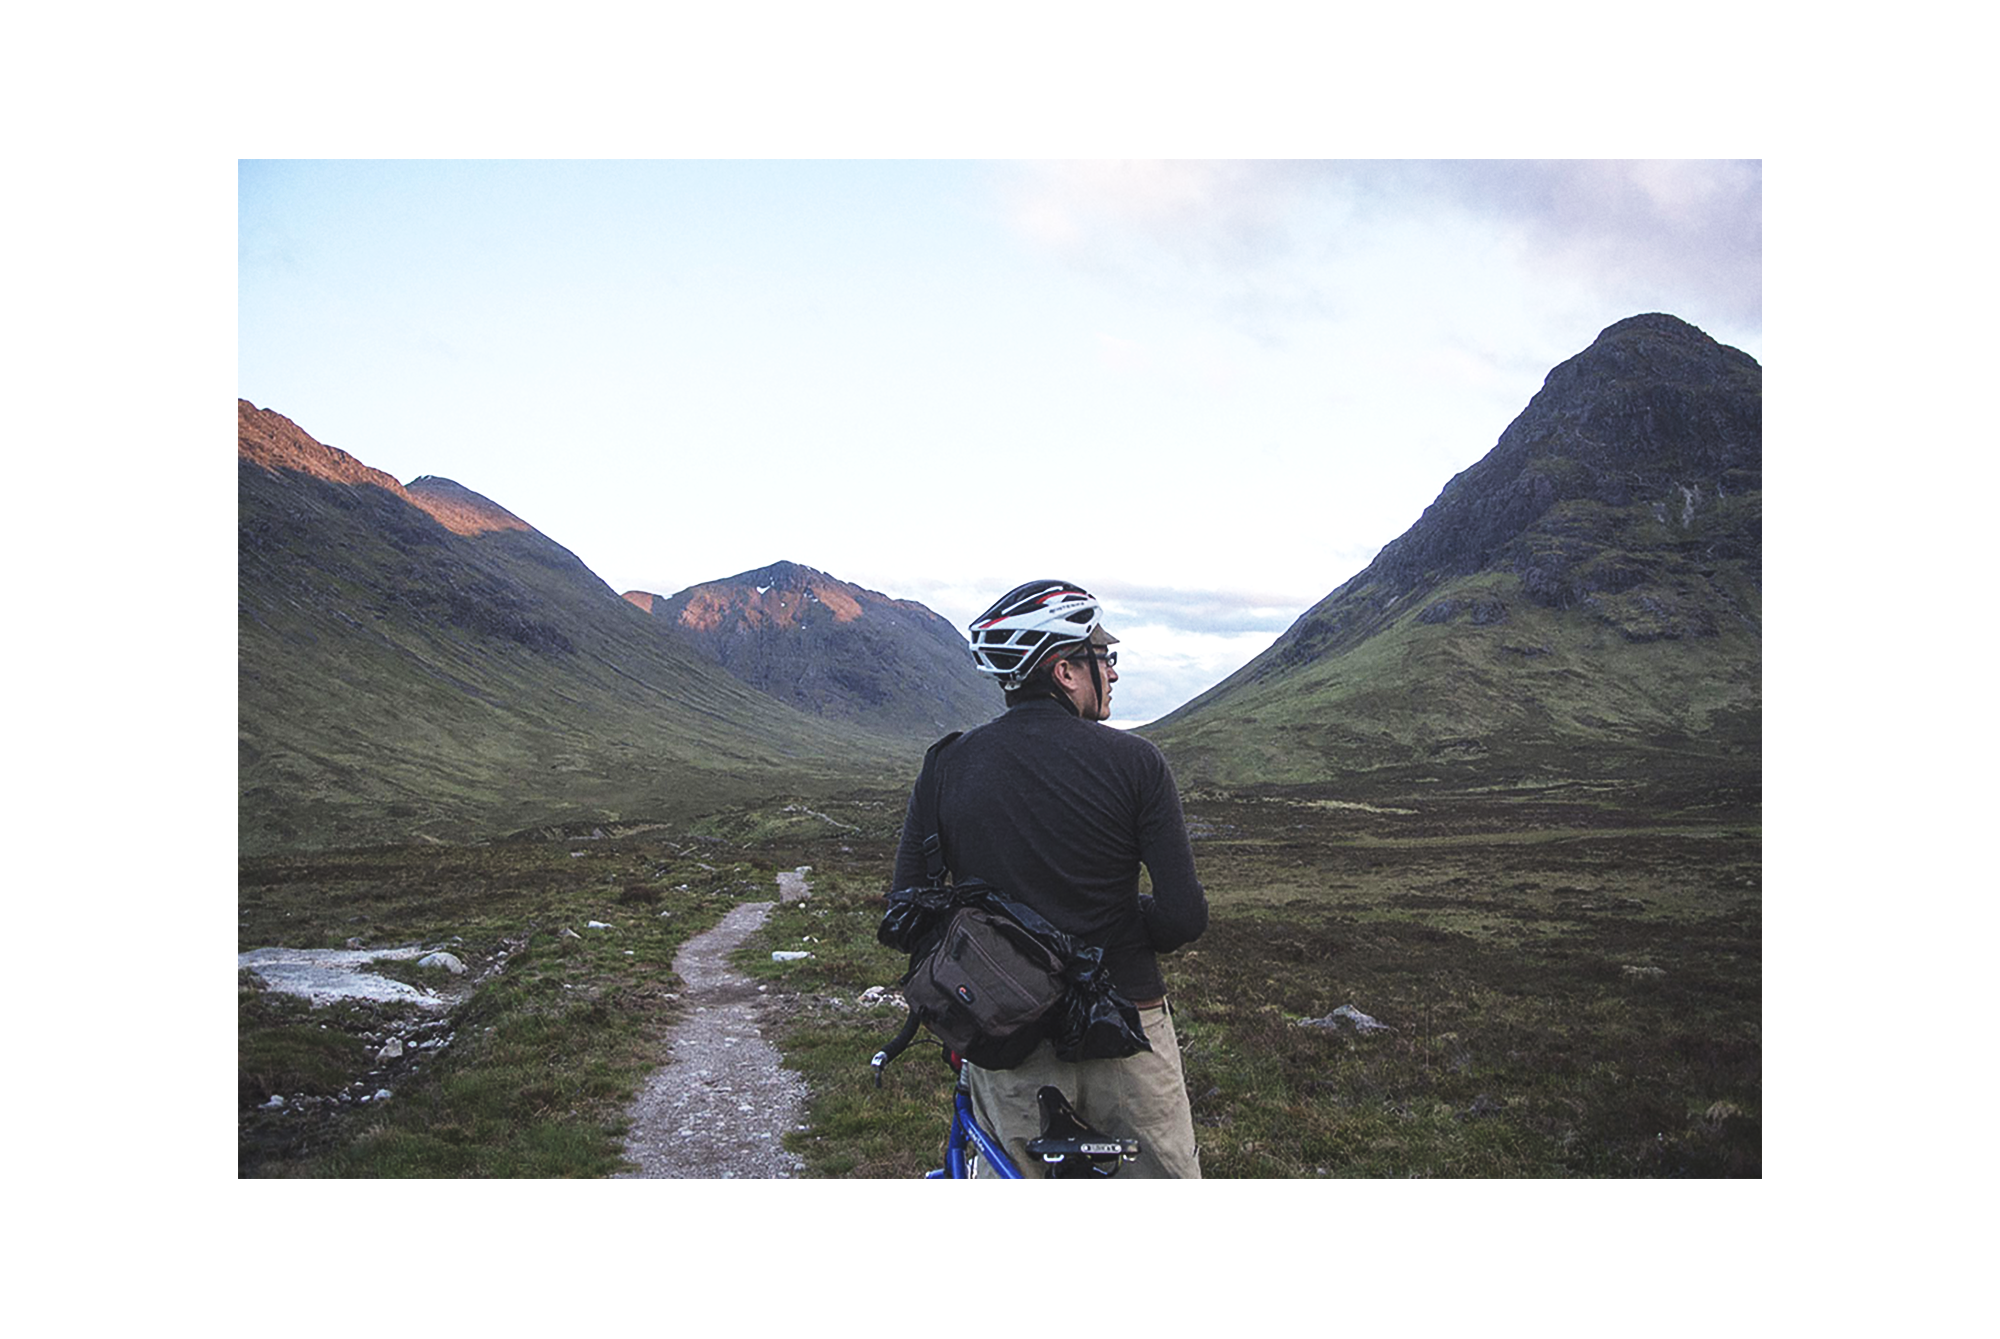 Bunyan VeloGlencoe Patch - Lucas Winzenburg of Bunyan Velo, an online cycling magazine, wanted a promotional piece to send out to his contributors and dedicated readers. He felt that a patch representing the essence of cycling adventures was the perfect way to show his thanks.